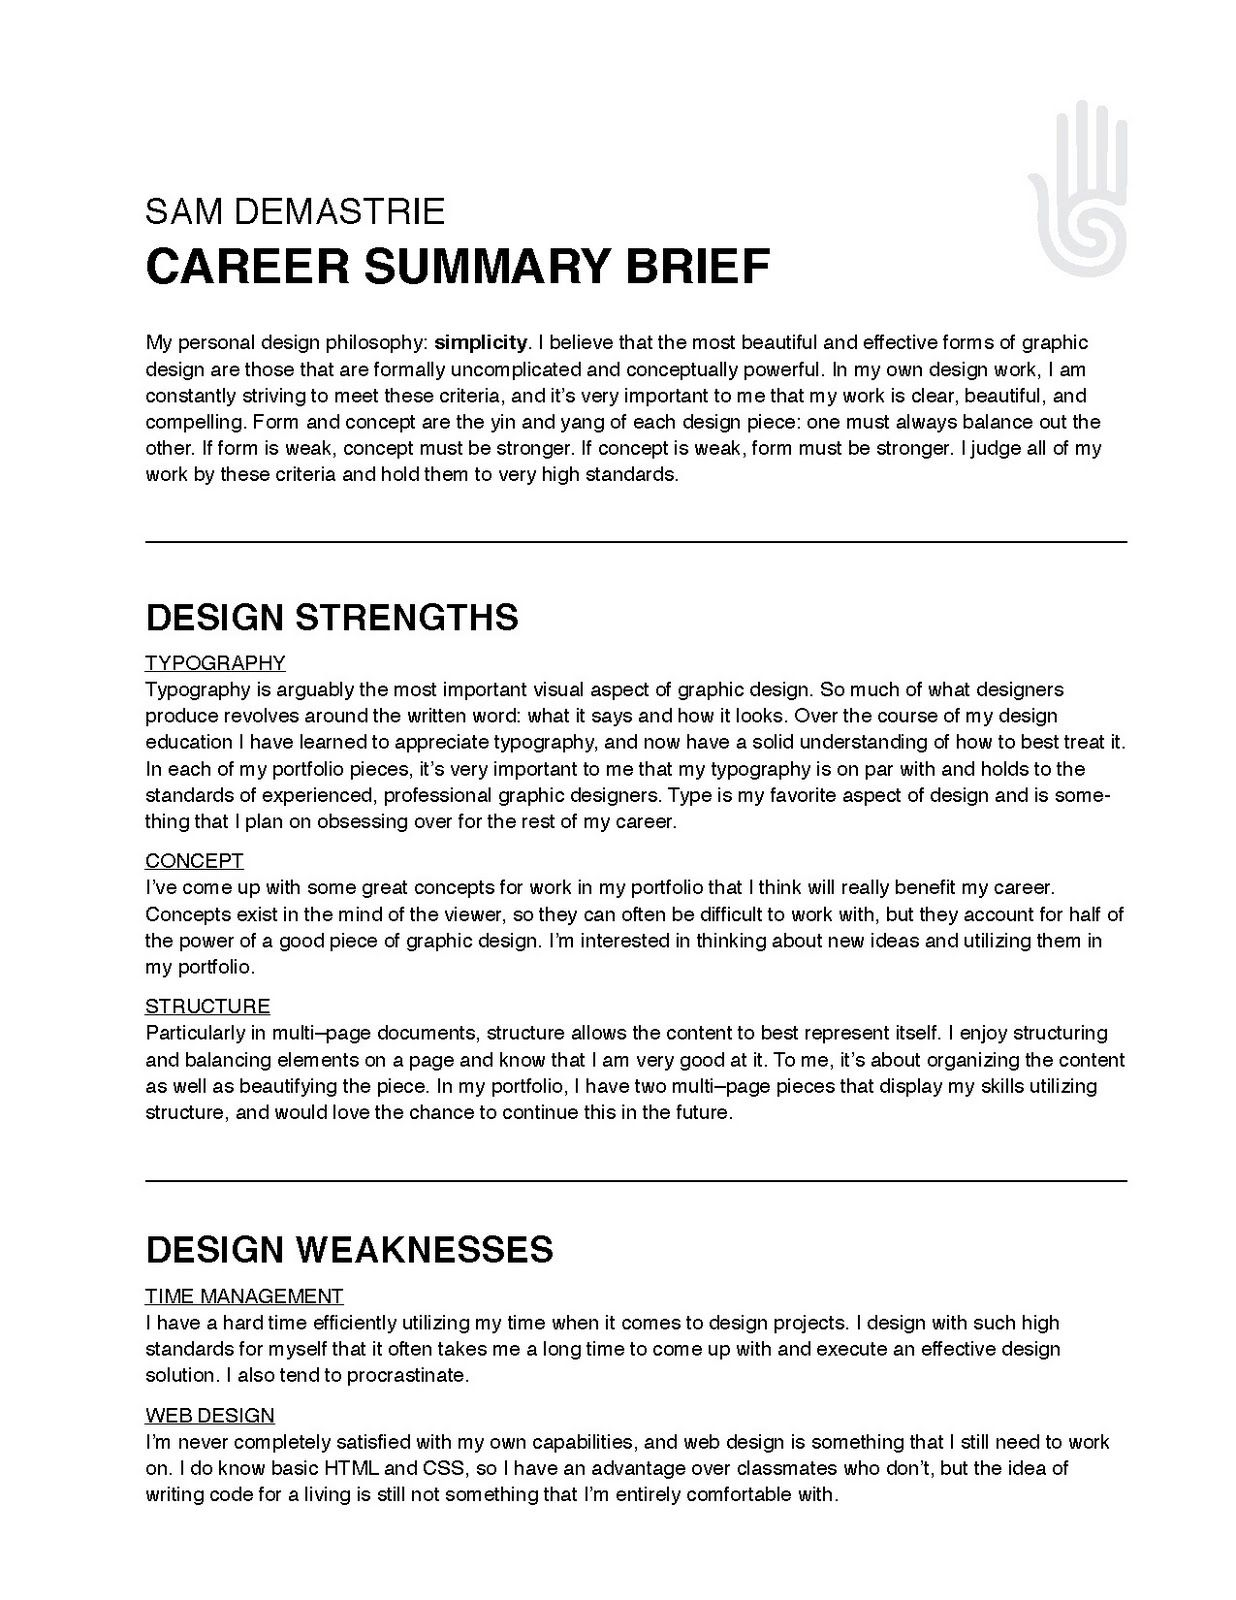 67 Awesome Photography Of Resume Examples with Career